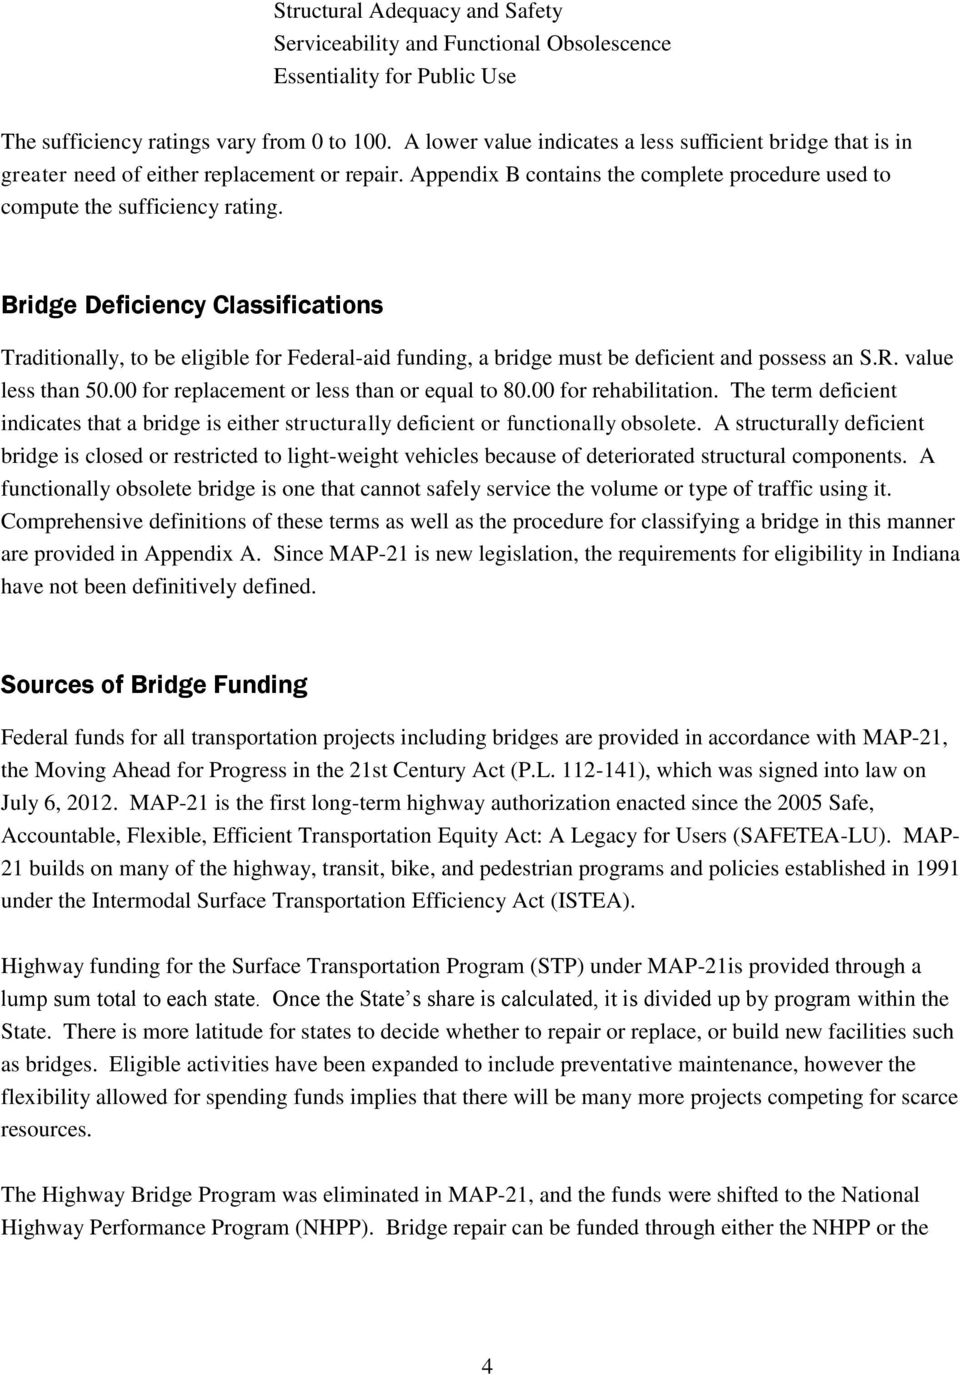 Bridge Deficiency Classifications Traditionally, to be eligible for Federal-aid funding, a bridge must be deficient and possess an S.R. value less than 50.